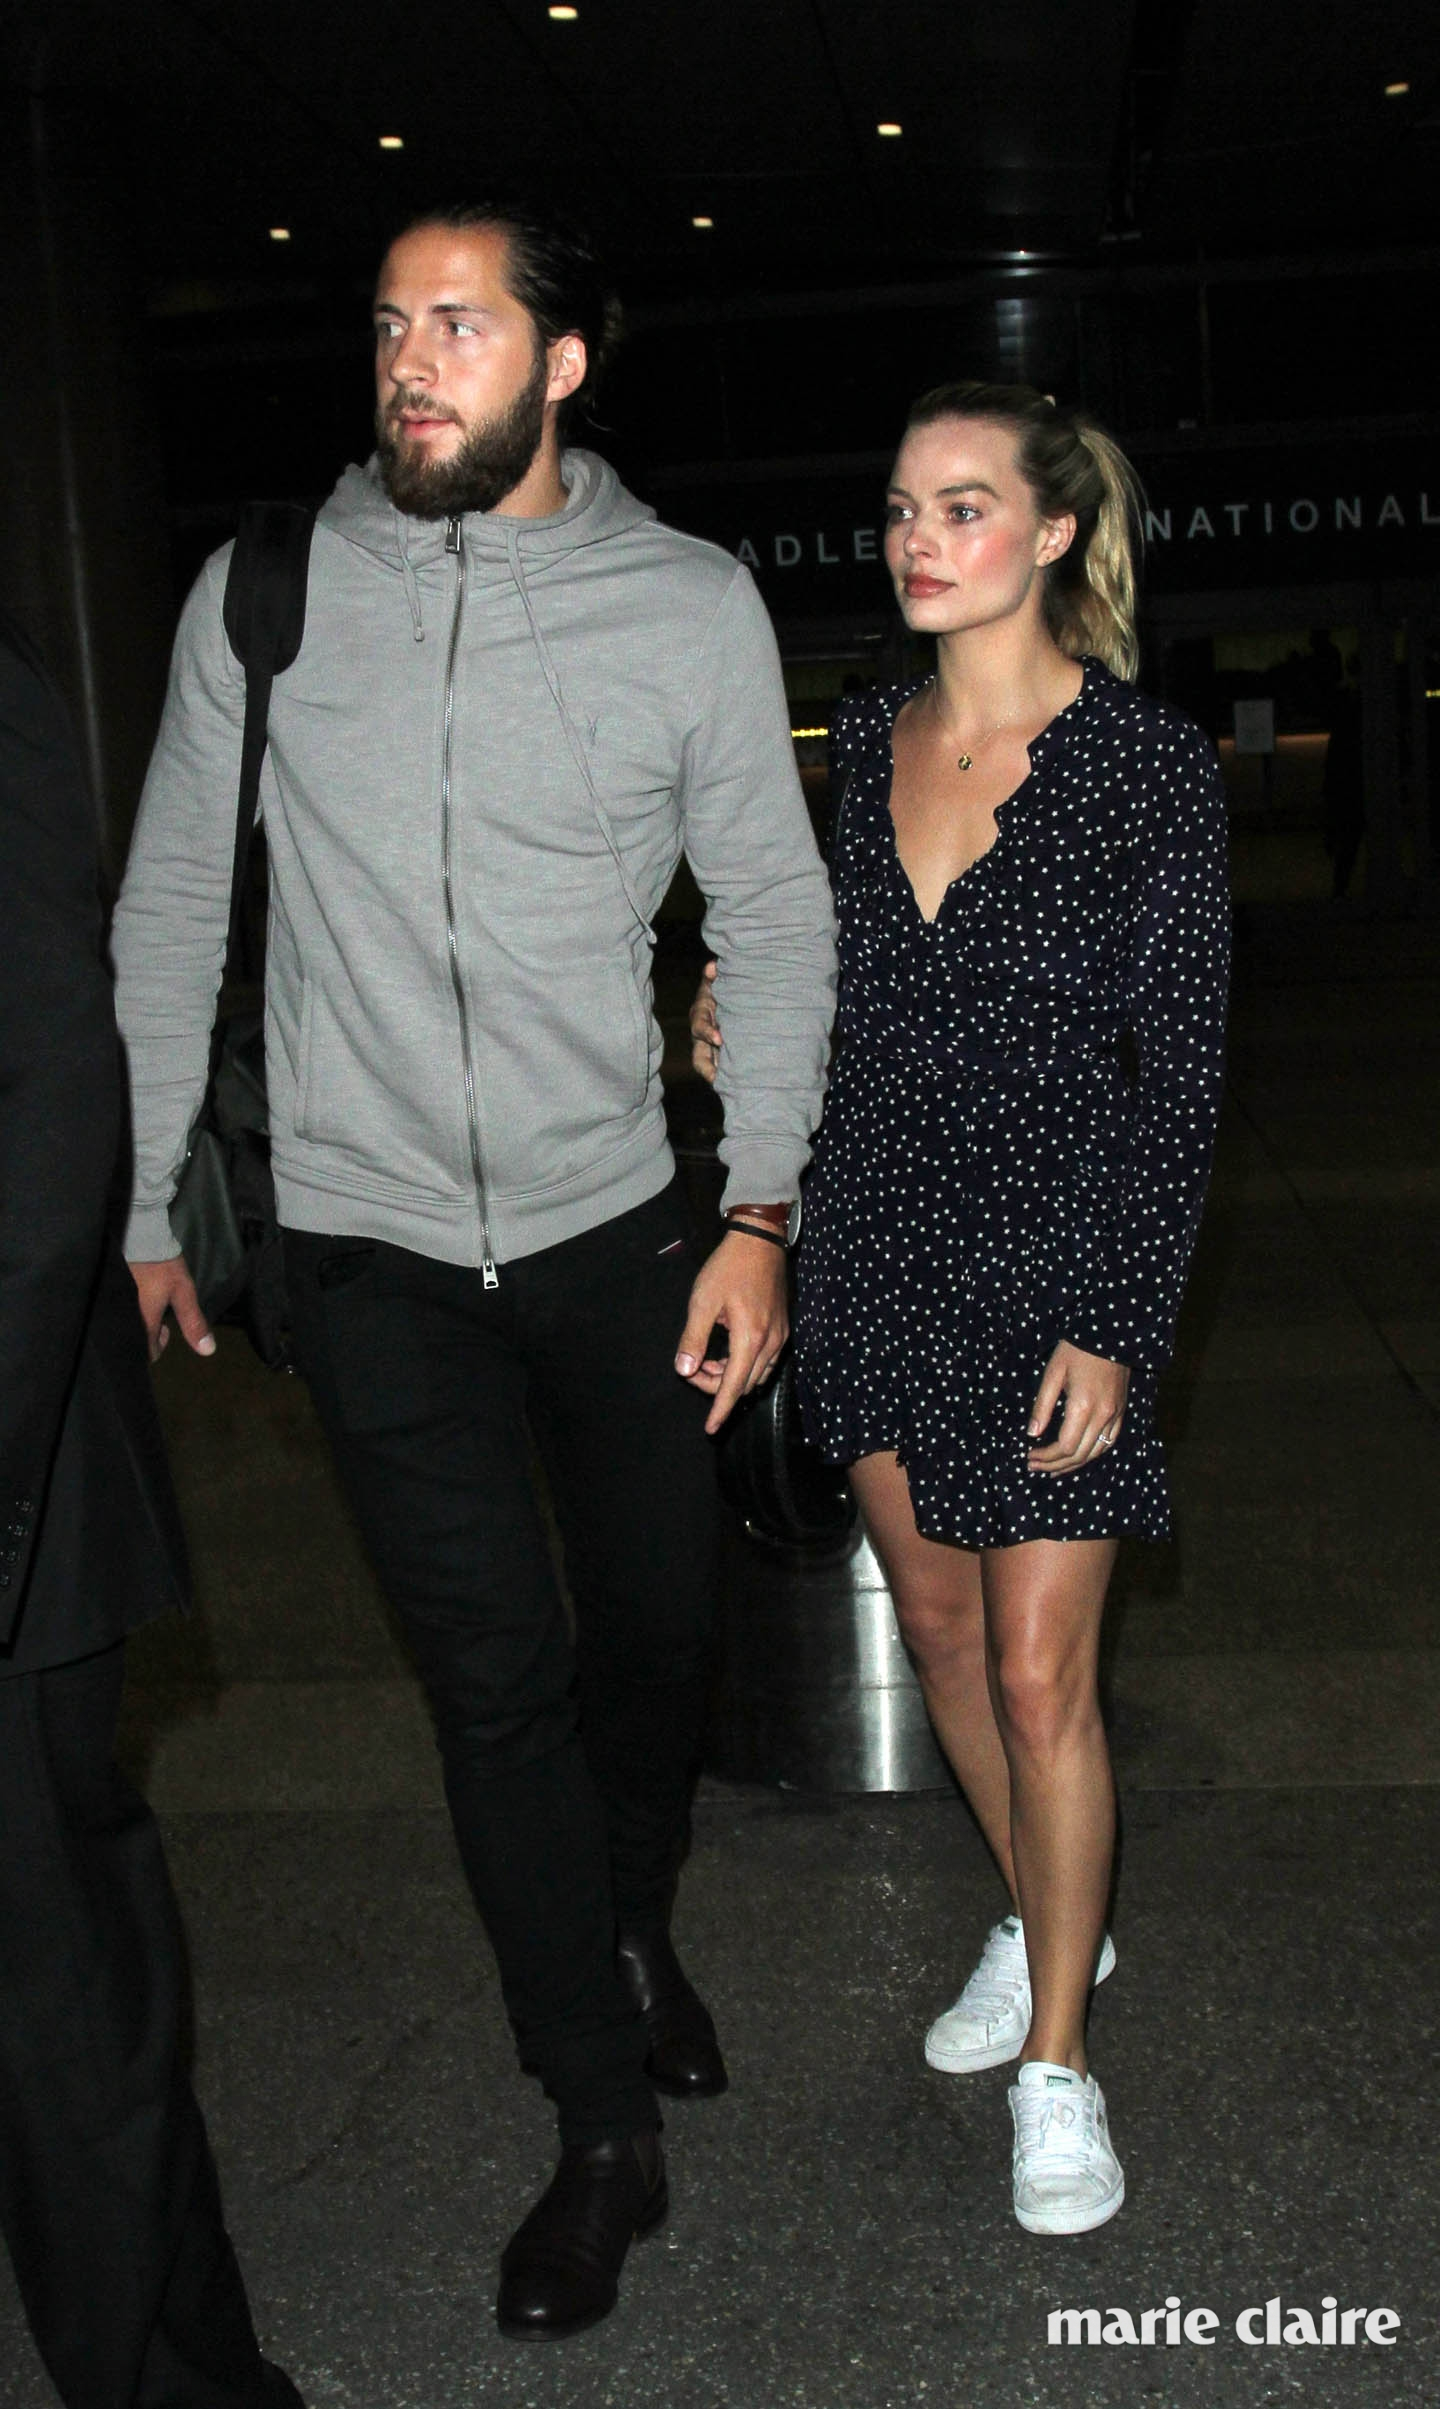 Margot Robbie and her husband Tom Ackerley at Los Angeles International Airport (LAX) Featuring: Margot Robbie, Tom Ackerley Where: Los Angeles, California, United States When: 02 Jan 2017 Credit: WENN.com